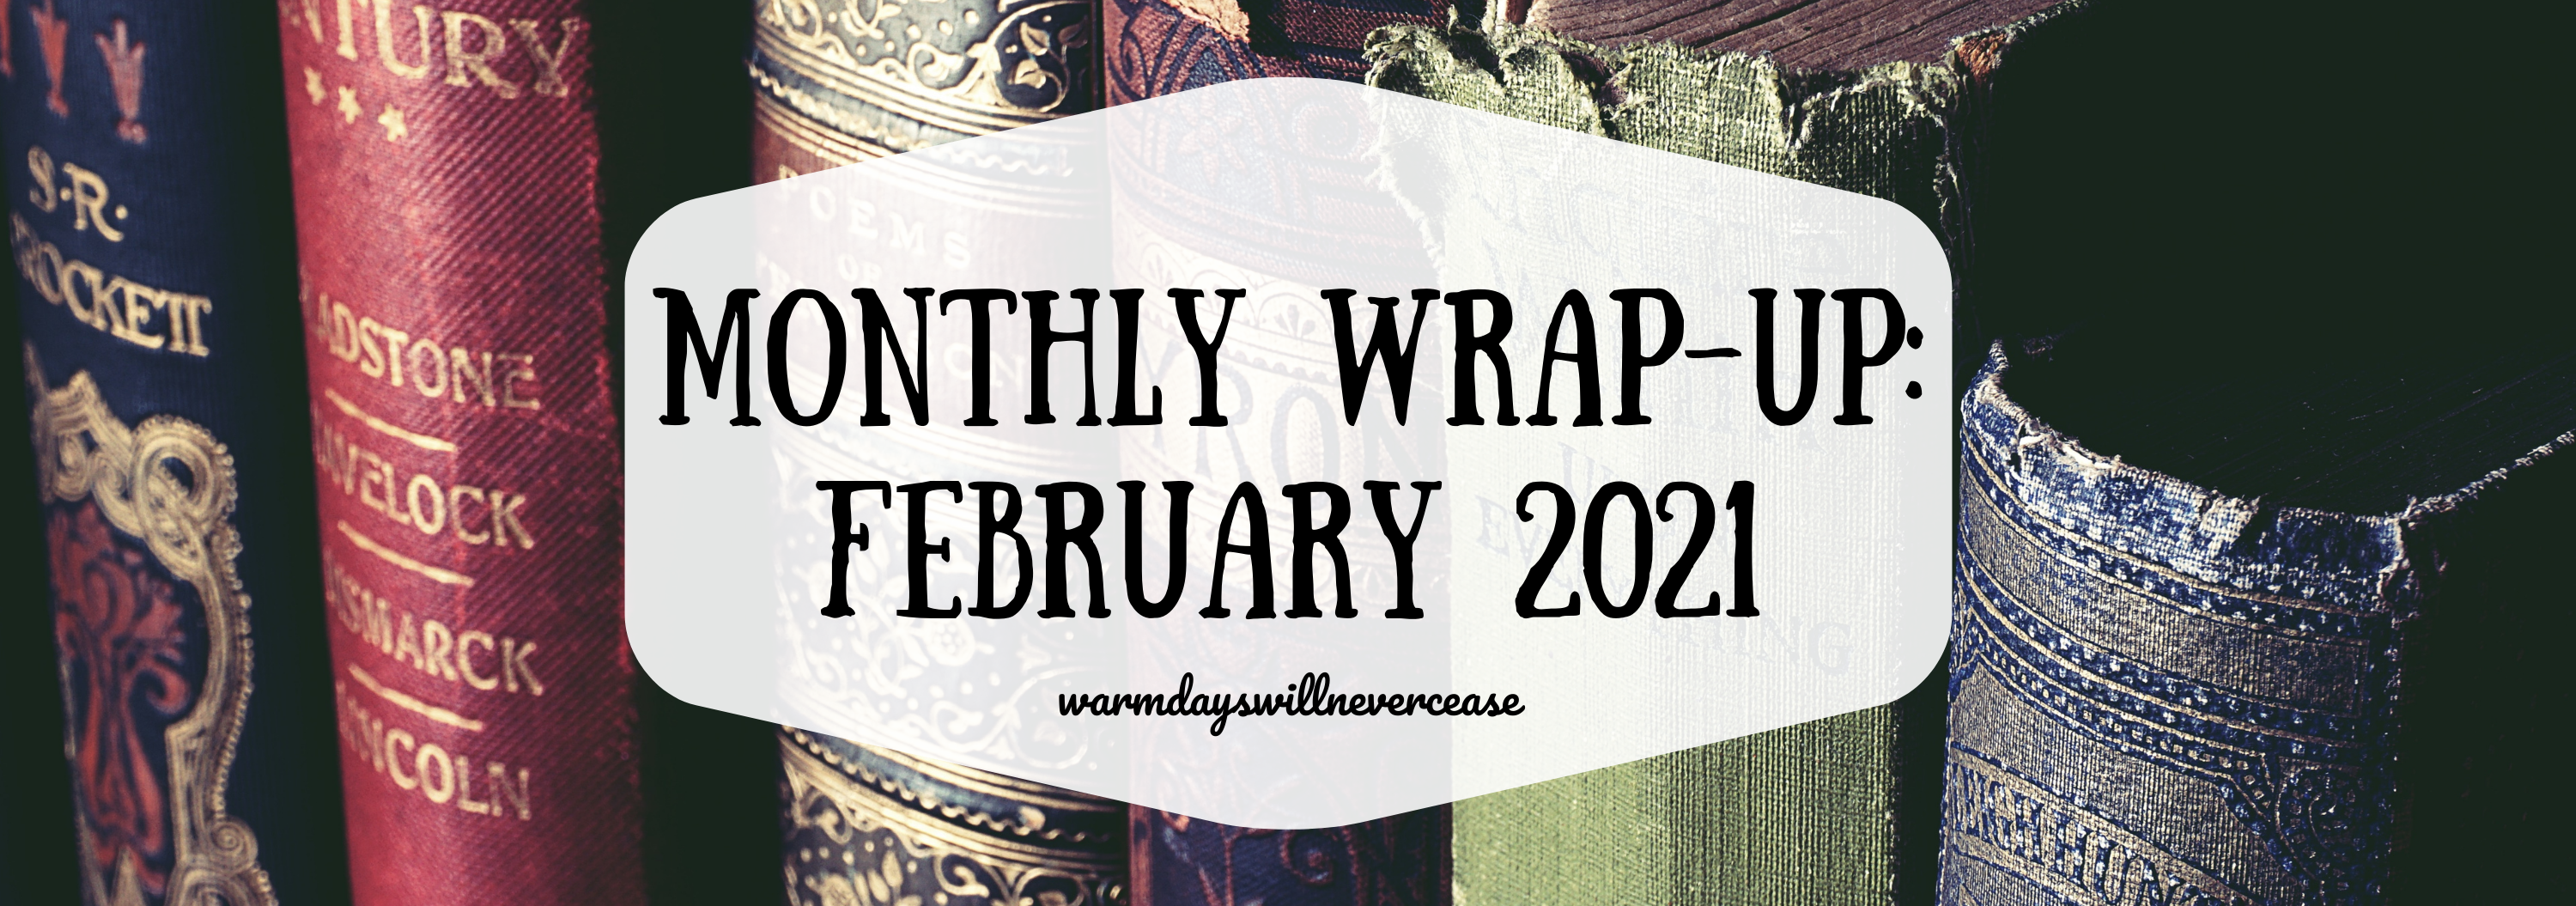 Feb 2021 Monthly Wrap Up